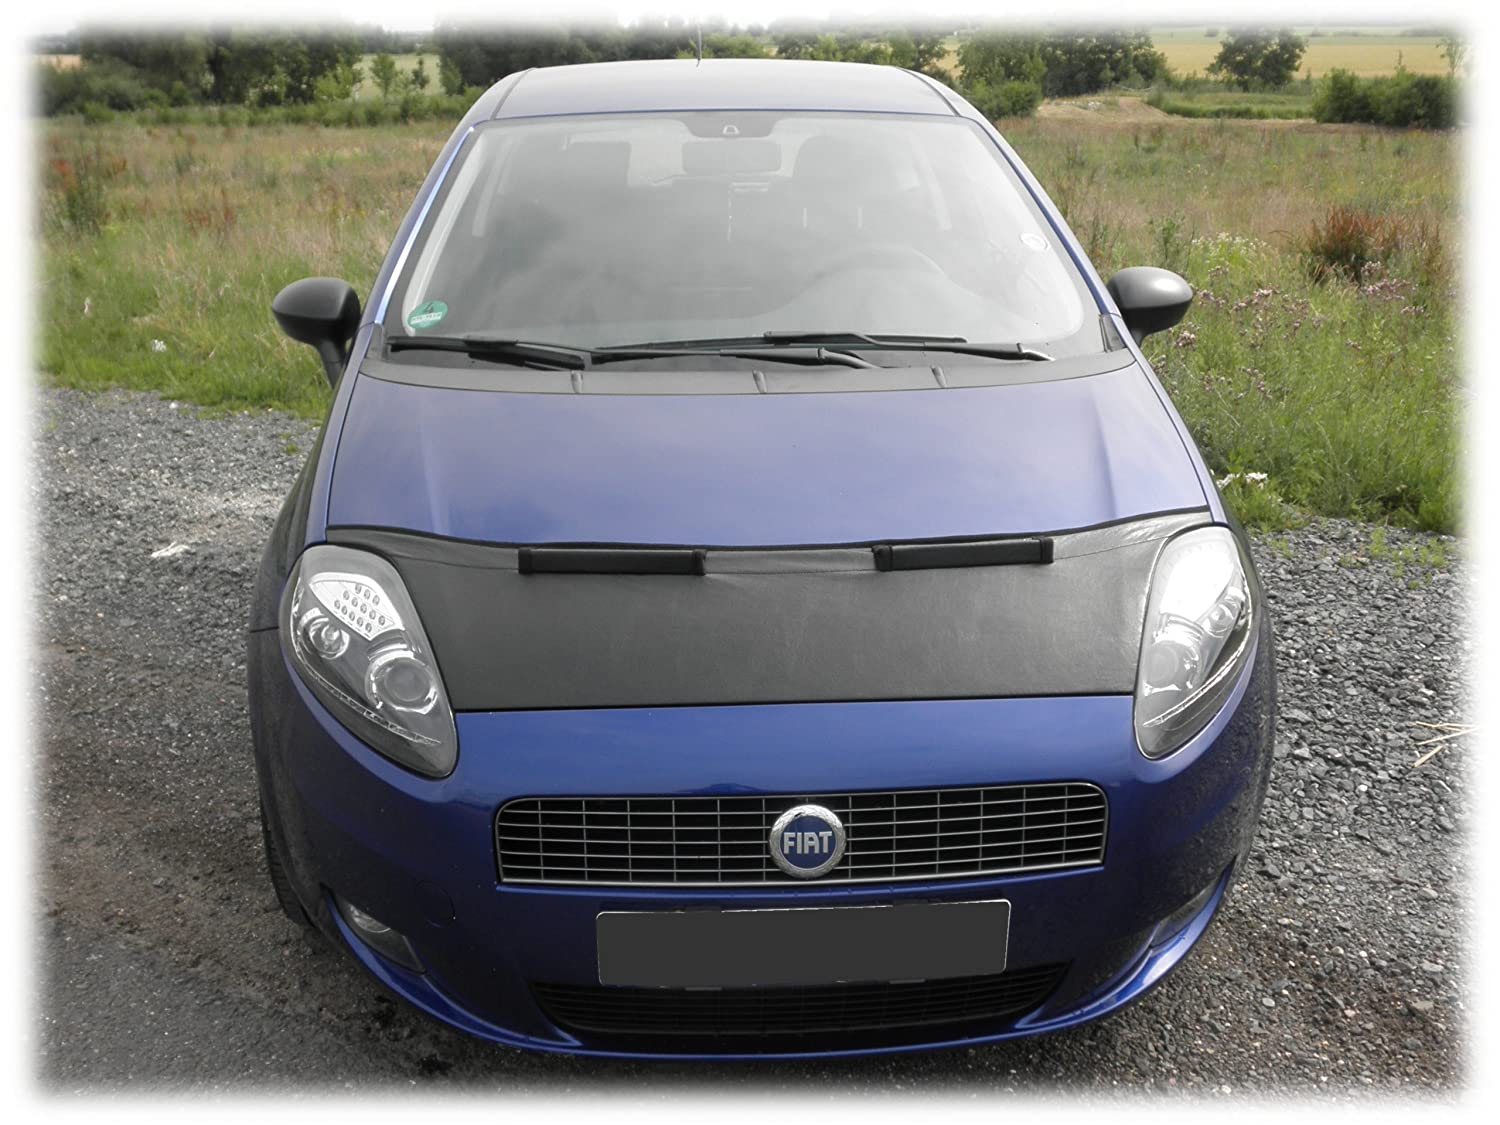 Amazon com: HOOD BRA Front End Nose Mask for Fiat Punto EVO